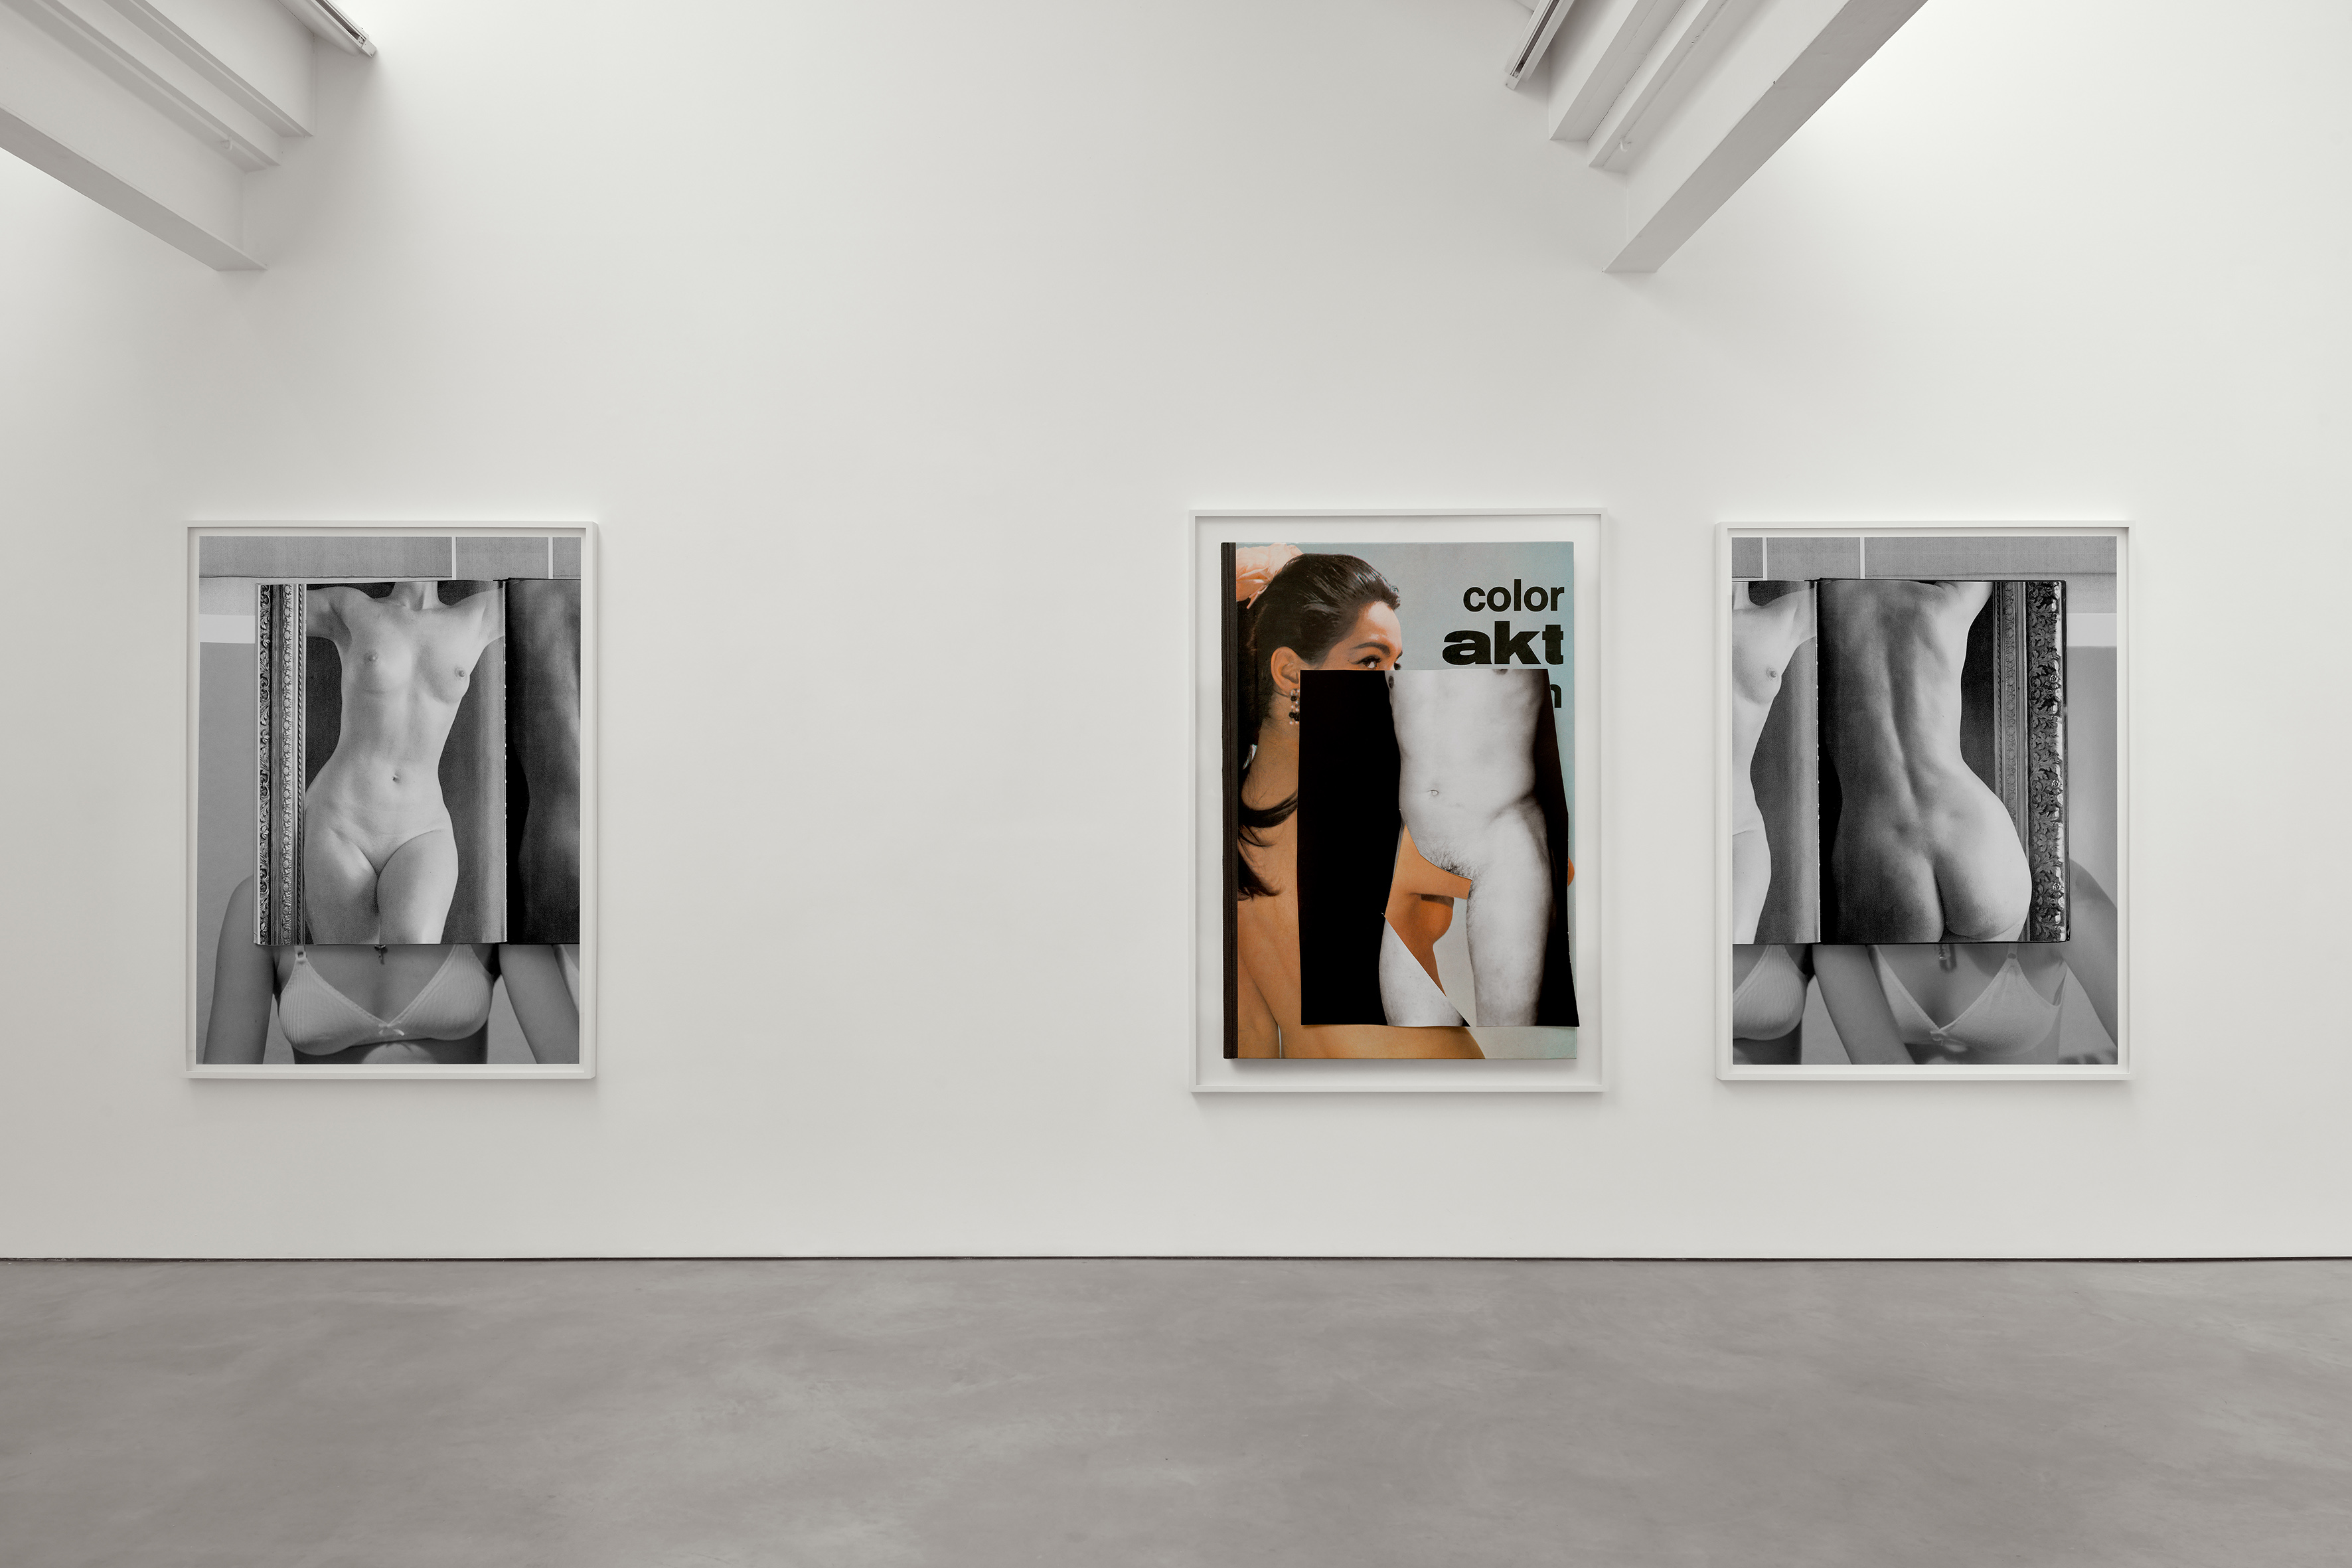 In Front of the Camera, Installation view, Stuart Shave/Modern Art London. © Collier Schorr. Photo Robert Glowacki. Courtesy Stuart Shave/Modern Art, London